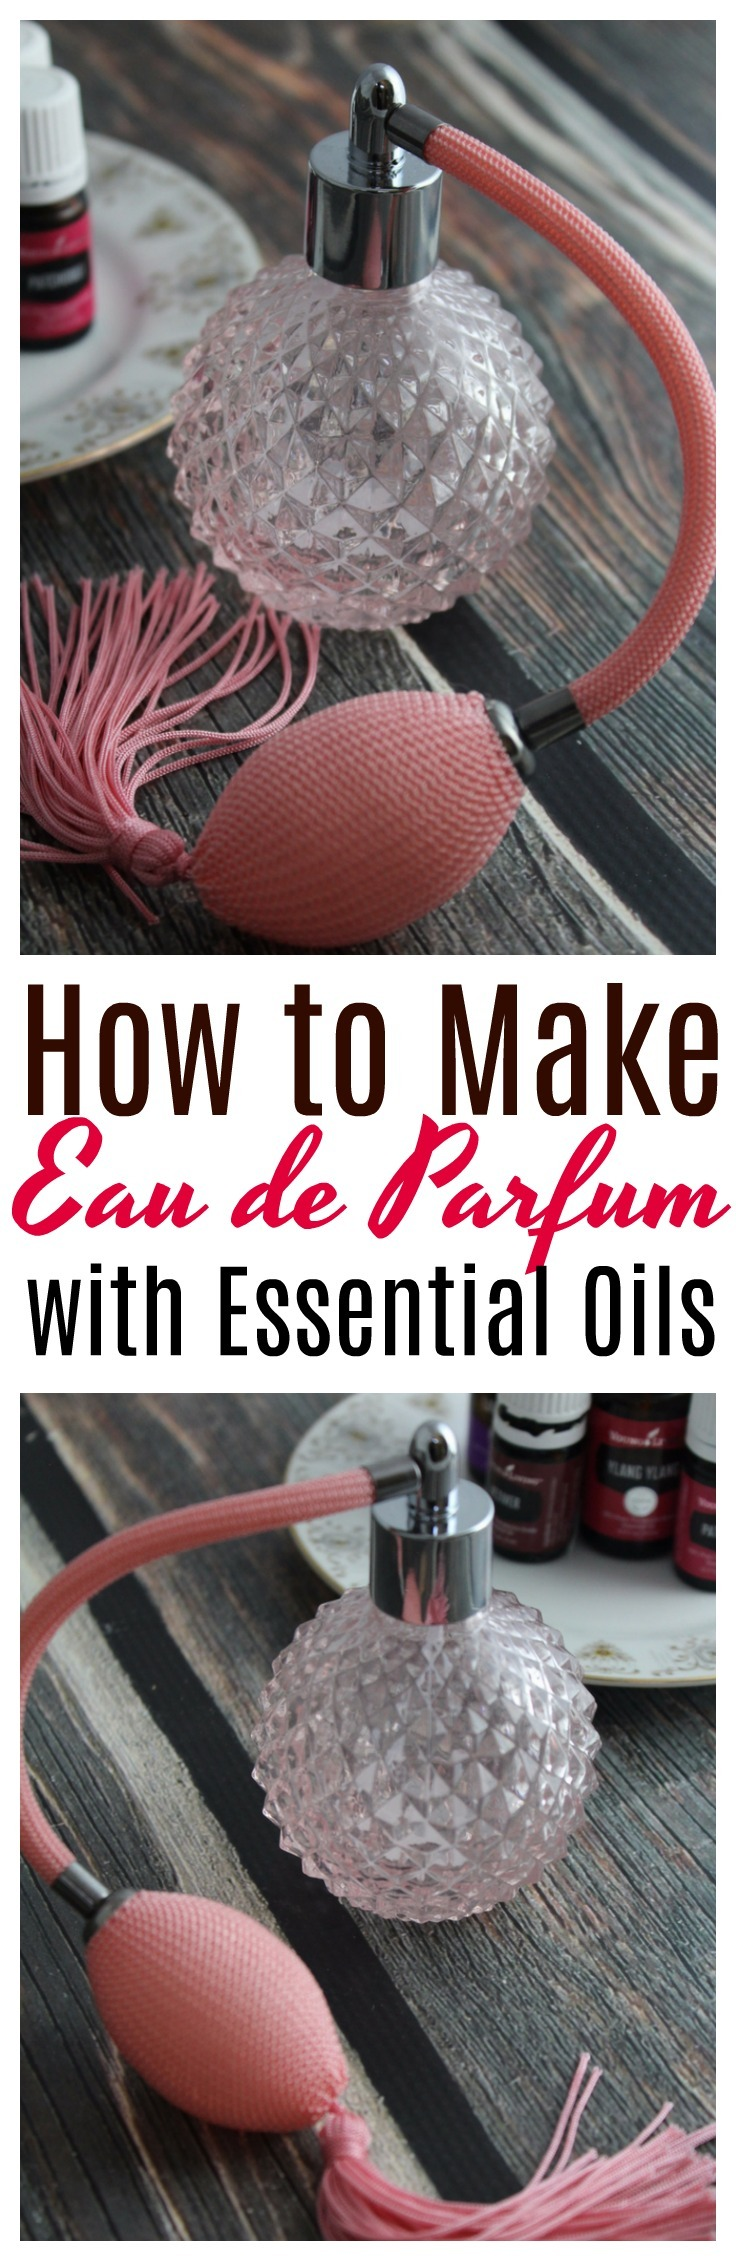 Find out how to make your own homemade perfume with essential oils - for you, or to give as a gift!  #perfume | #essentialoils | #DIY